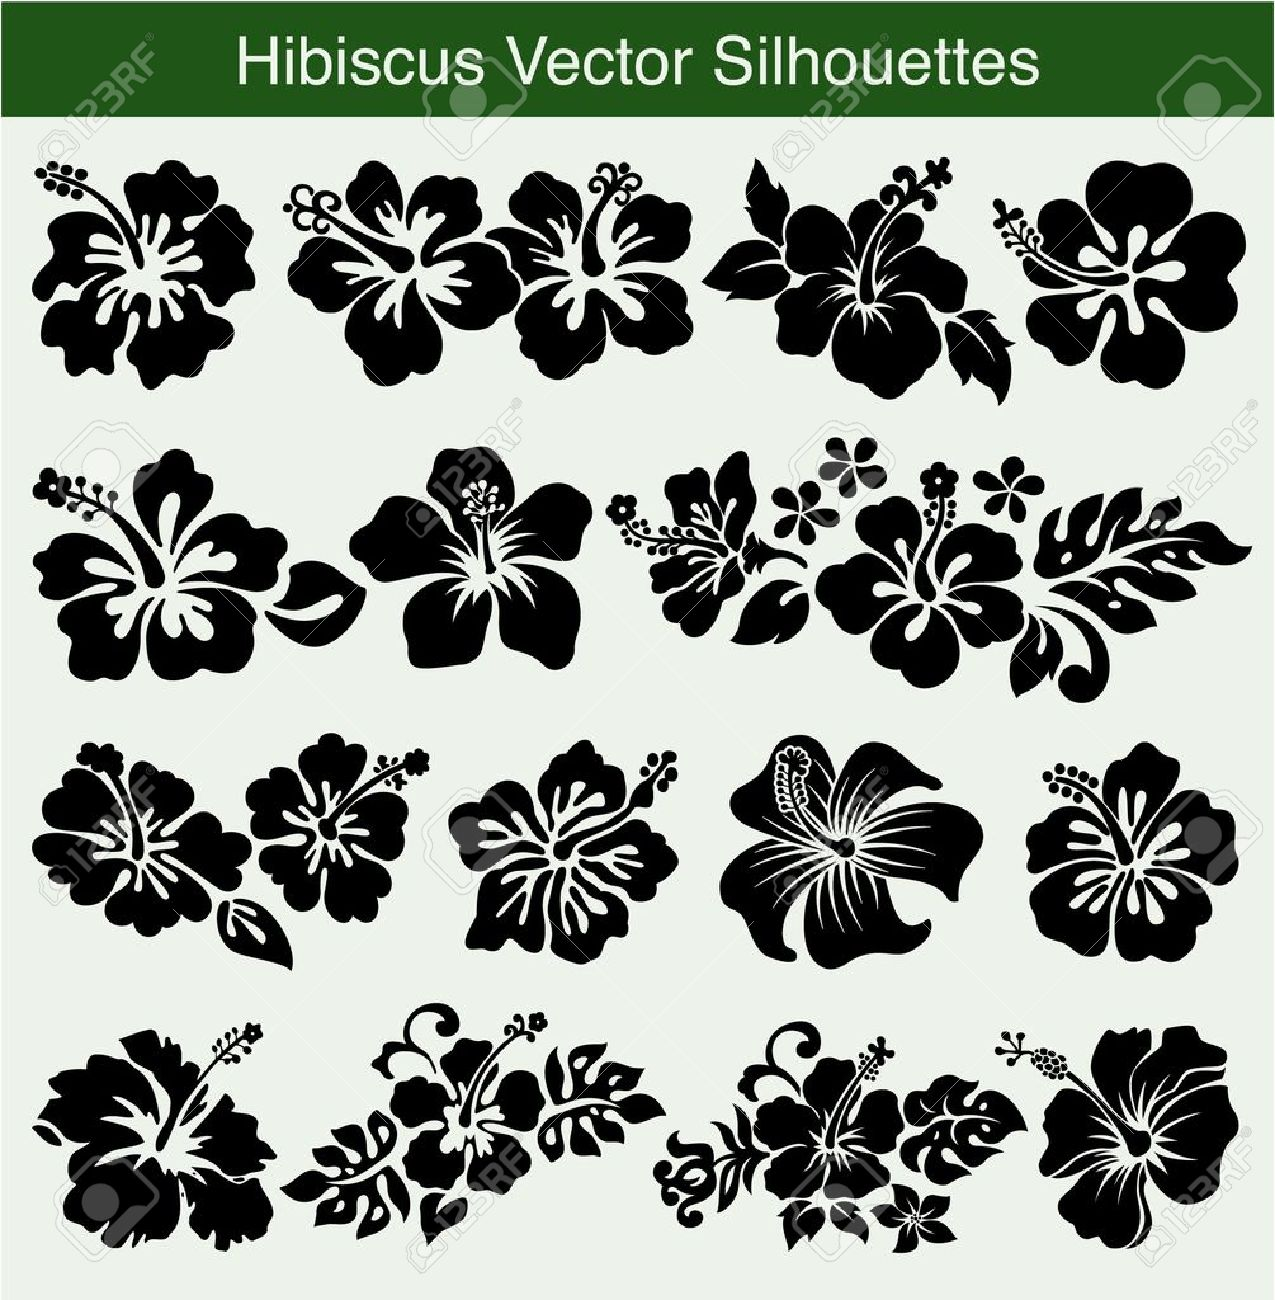 Hibiscus silhouettes Stock Vector - 16335027